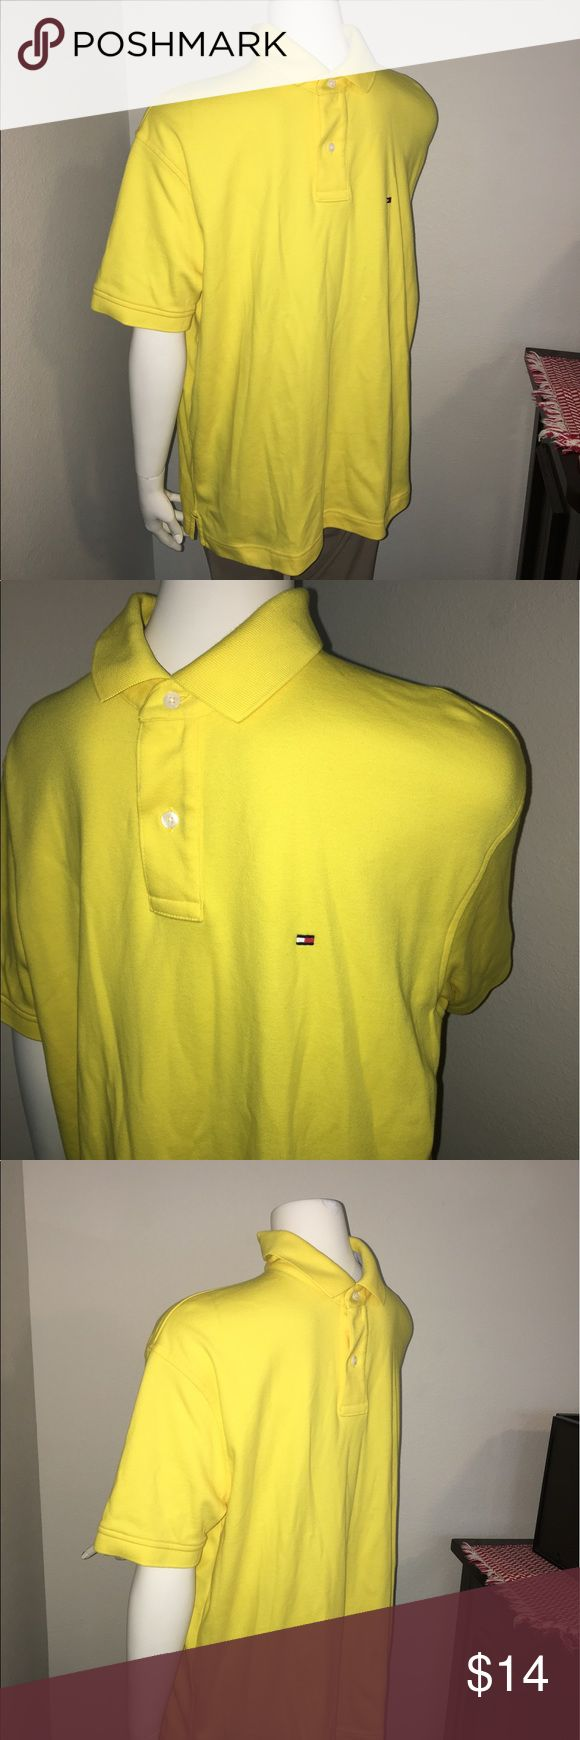 """Mens yellow tommy hilfiger SS polo shirt sz: L Thank you for viewing my listing, for sale is a Tommy Hilfiger brand, men's, yellow, short sleeve, Polo shirt Sz: L Colors: yellow If you have any questions or would like additional photos please feel free to ask.  From under one arm to under the other measures appx 24"""" from the top of the shoulder to the bottom of the shirt measures 28"""" Tommy Hilfiger Shirts Polos"""